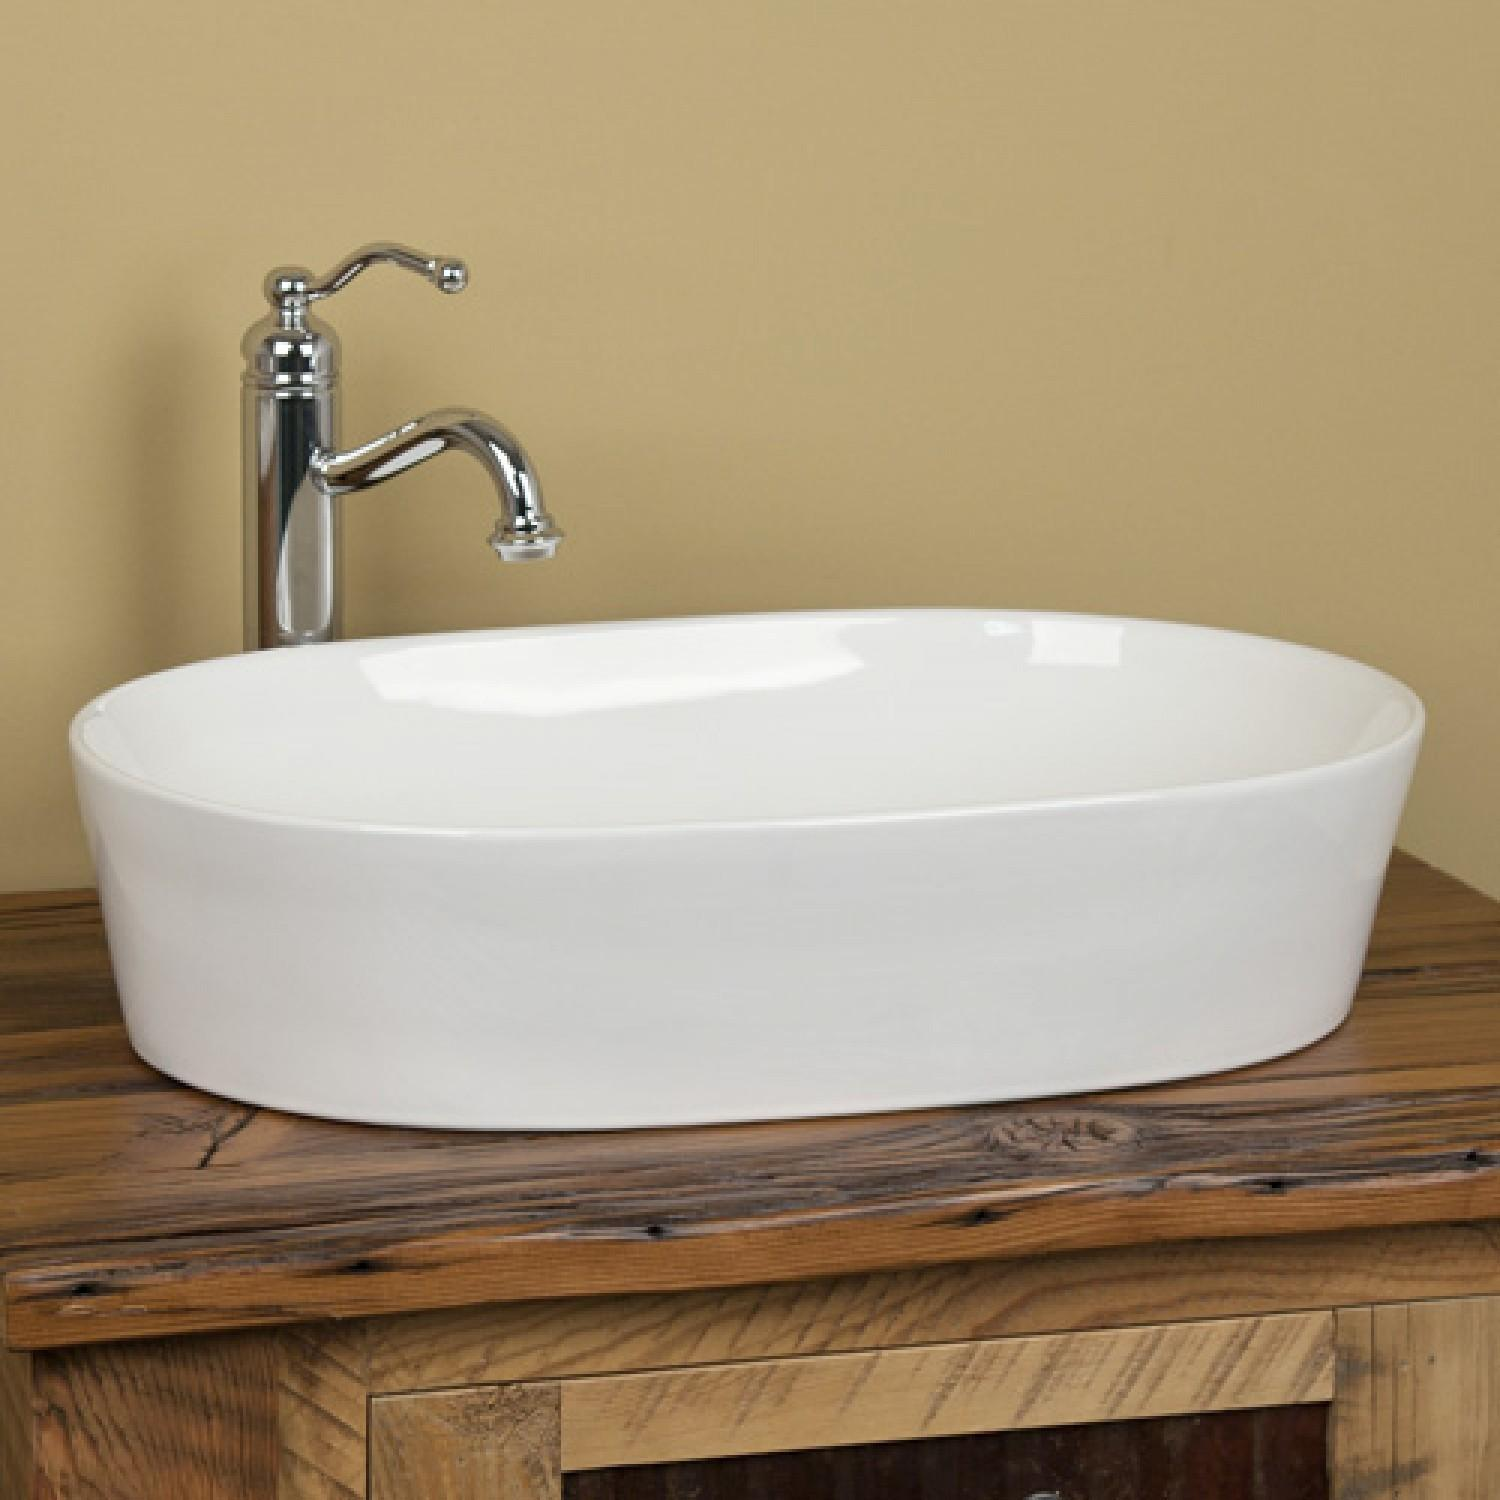 Norris Oval Porcelain Vessel Sink Bathroom